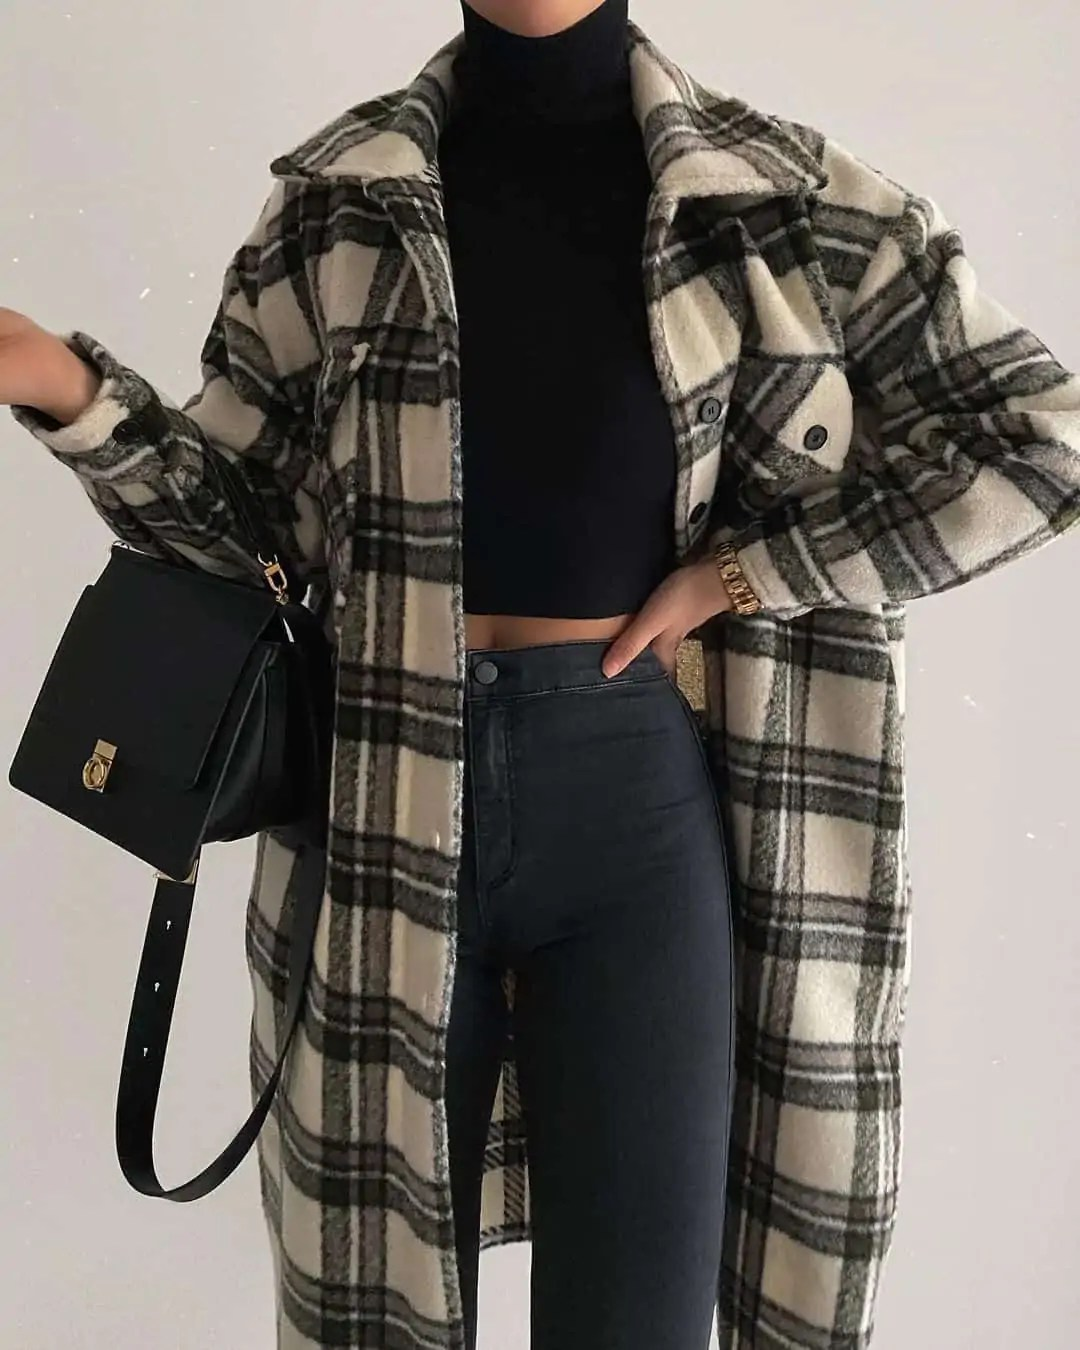 100+ Outfits to Inspire your next shopping haul 43